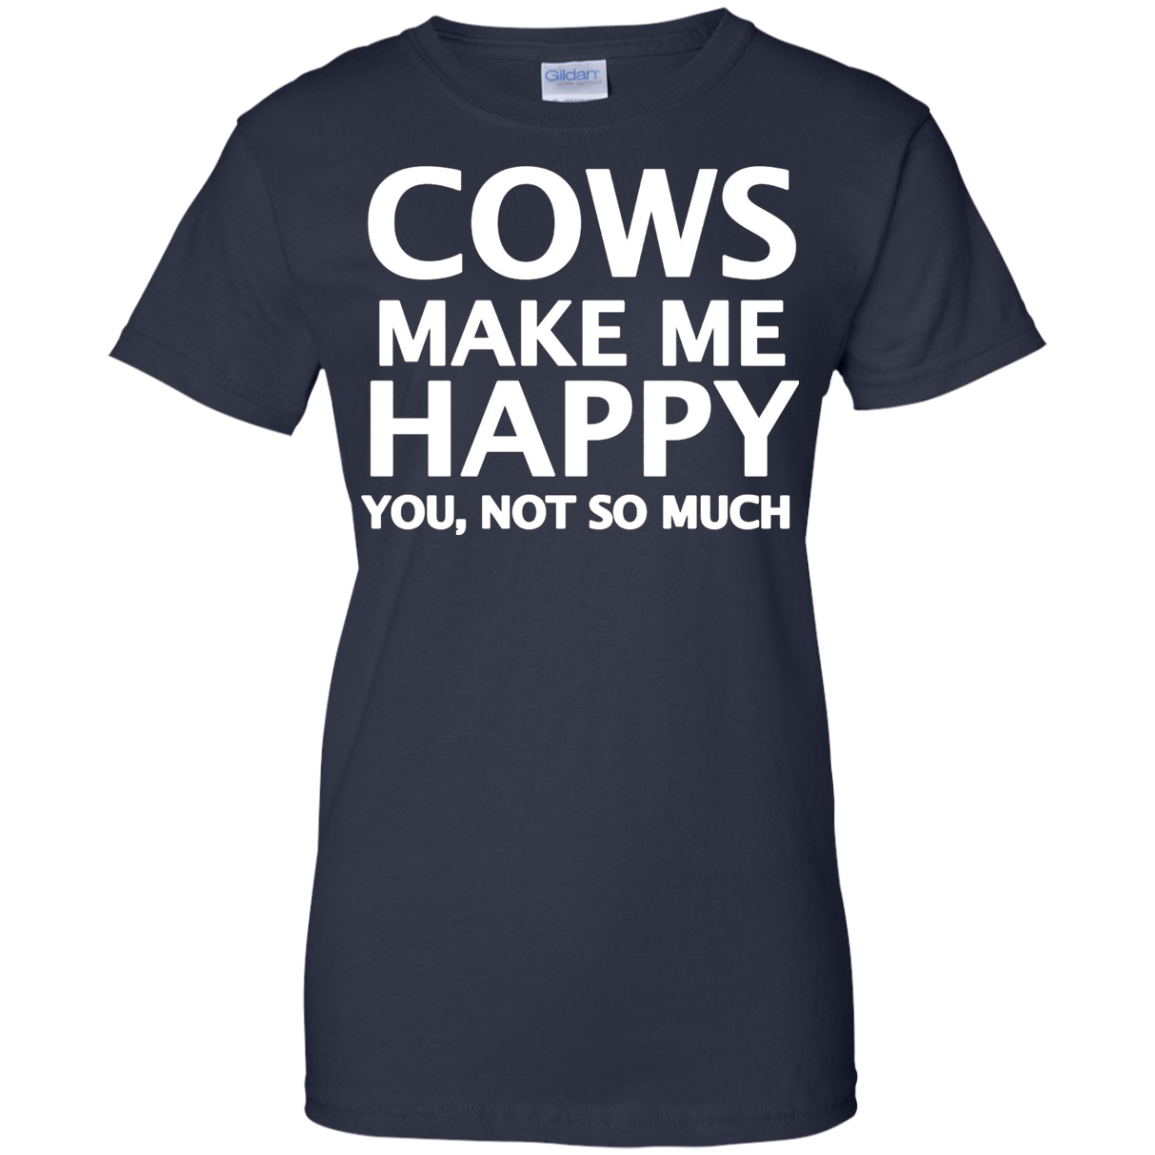 Cows Make Me Happy. You, Not So Much.